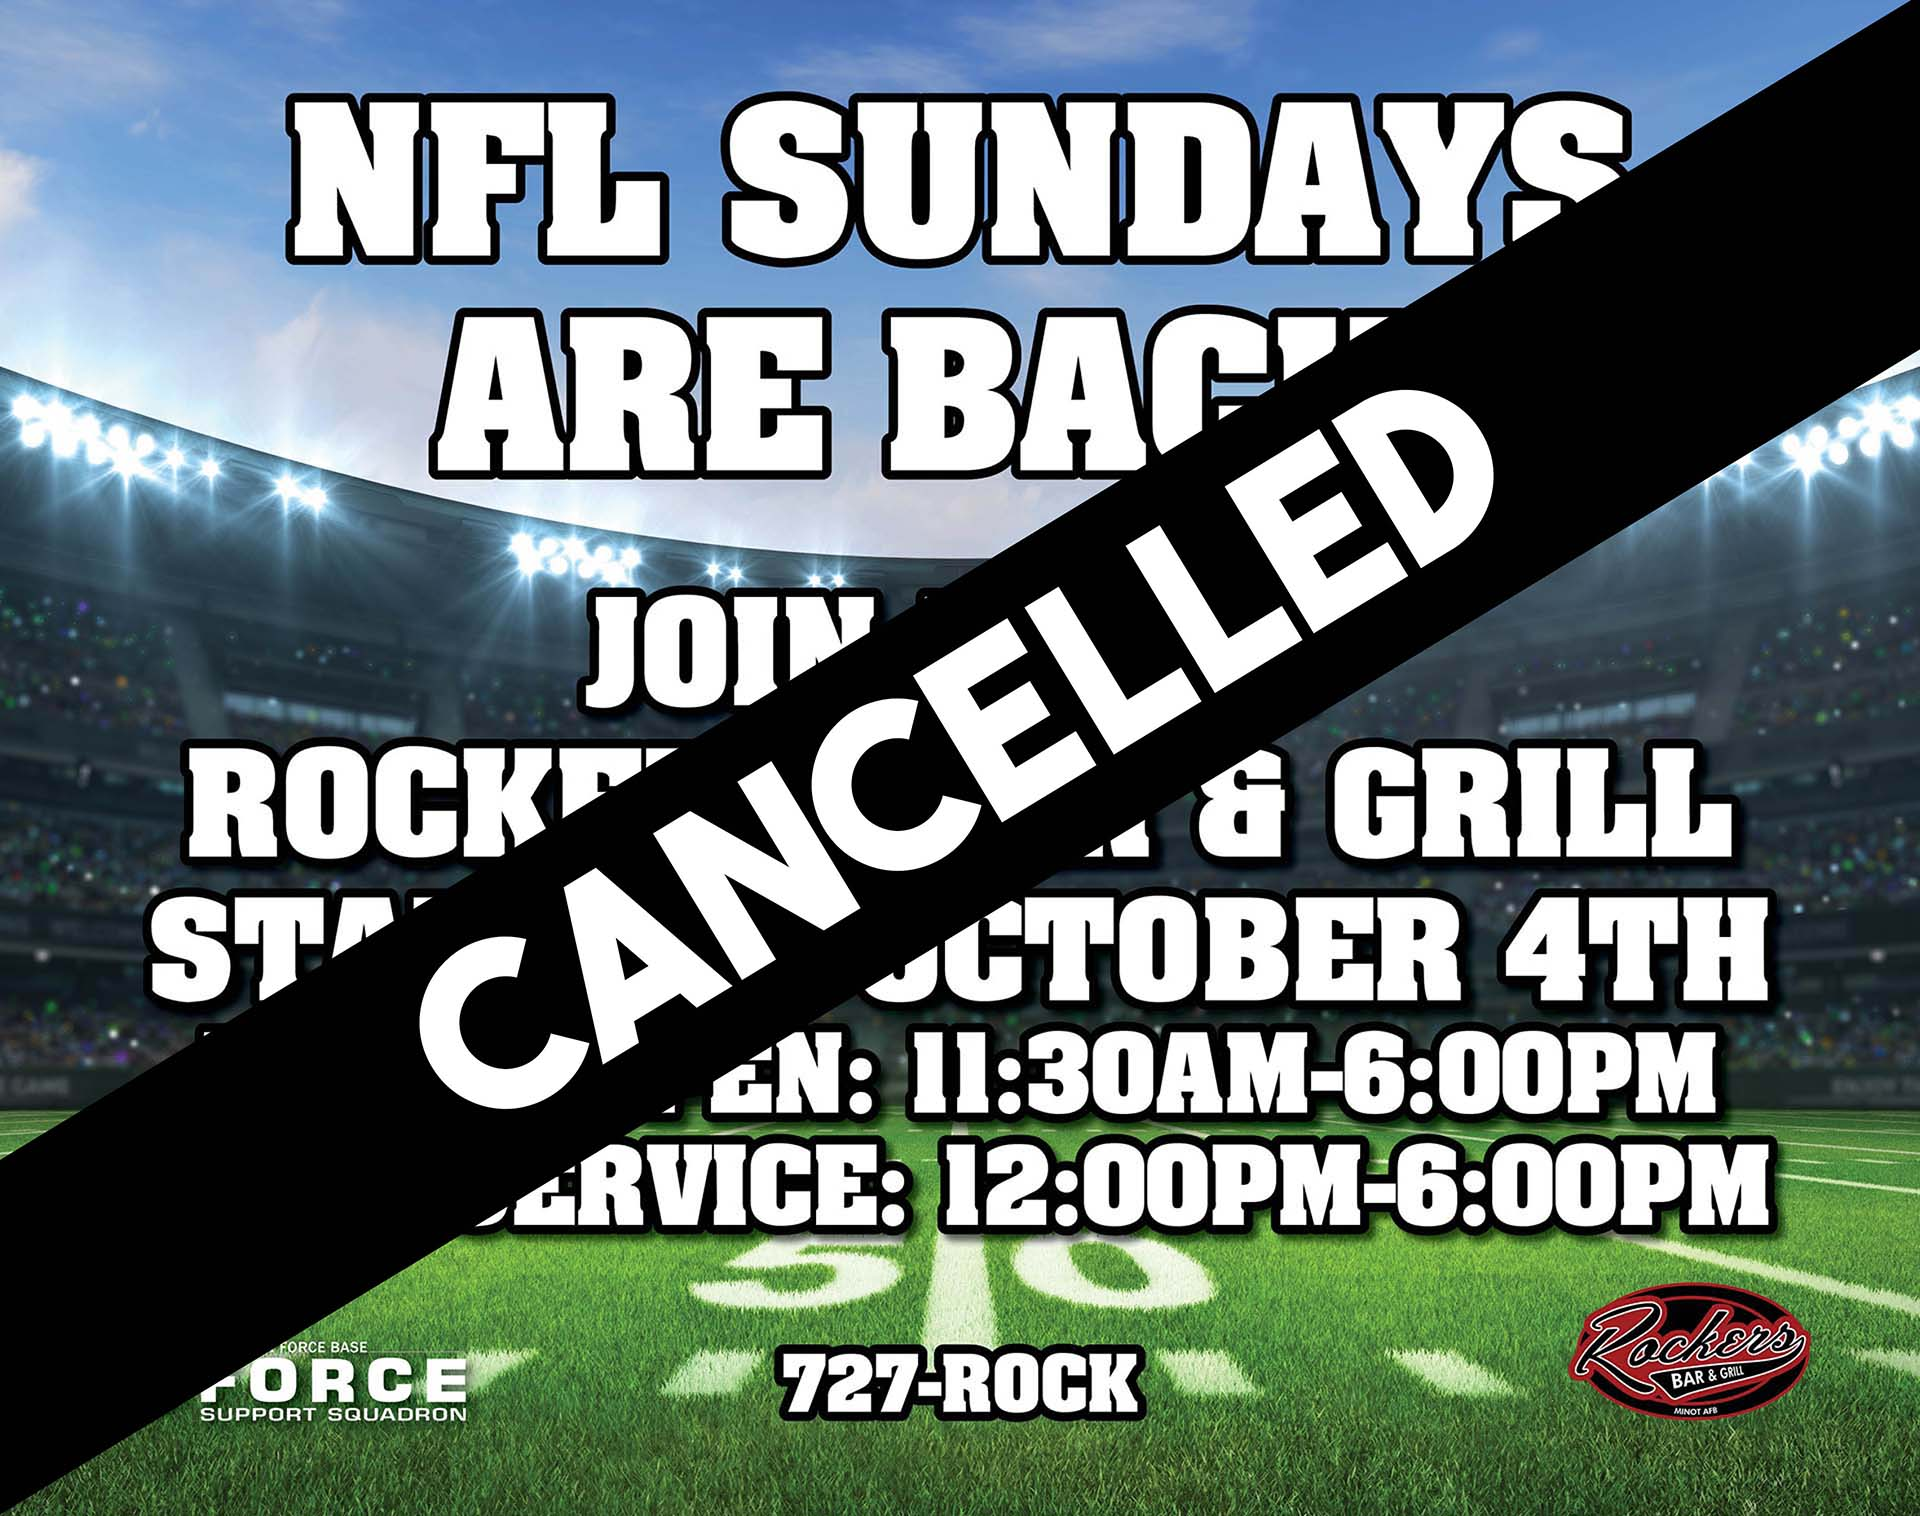 NFL Sunday Ticket - CANCELLED